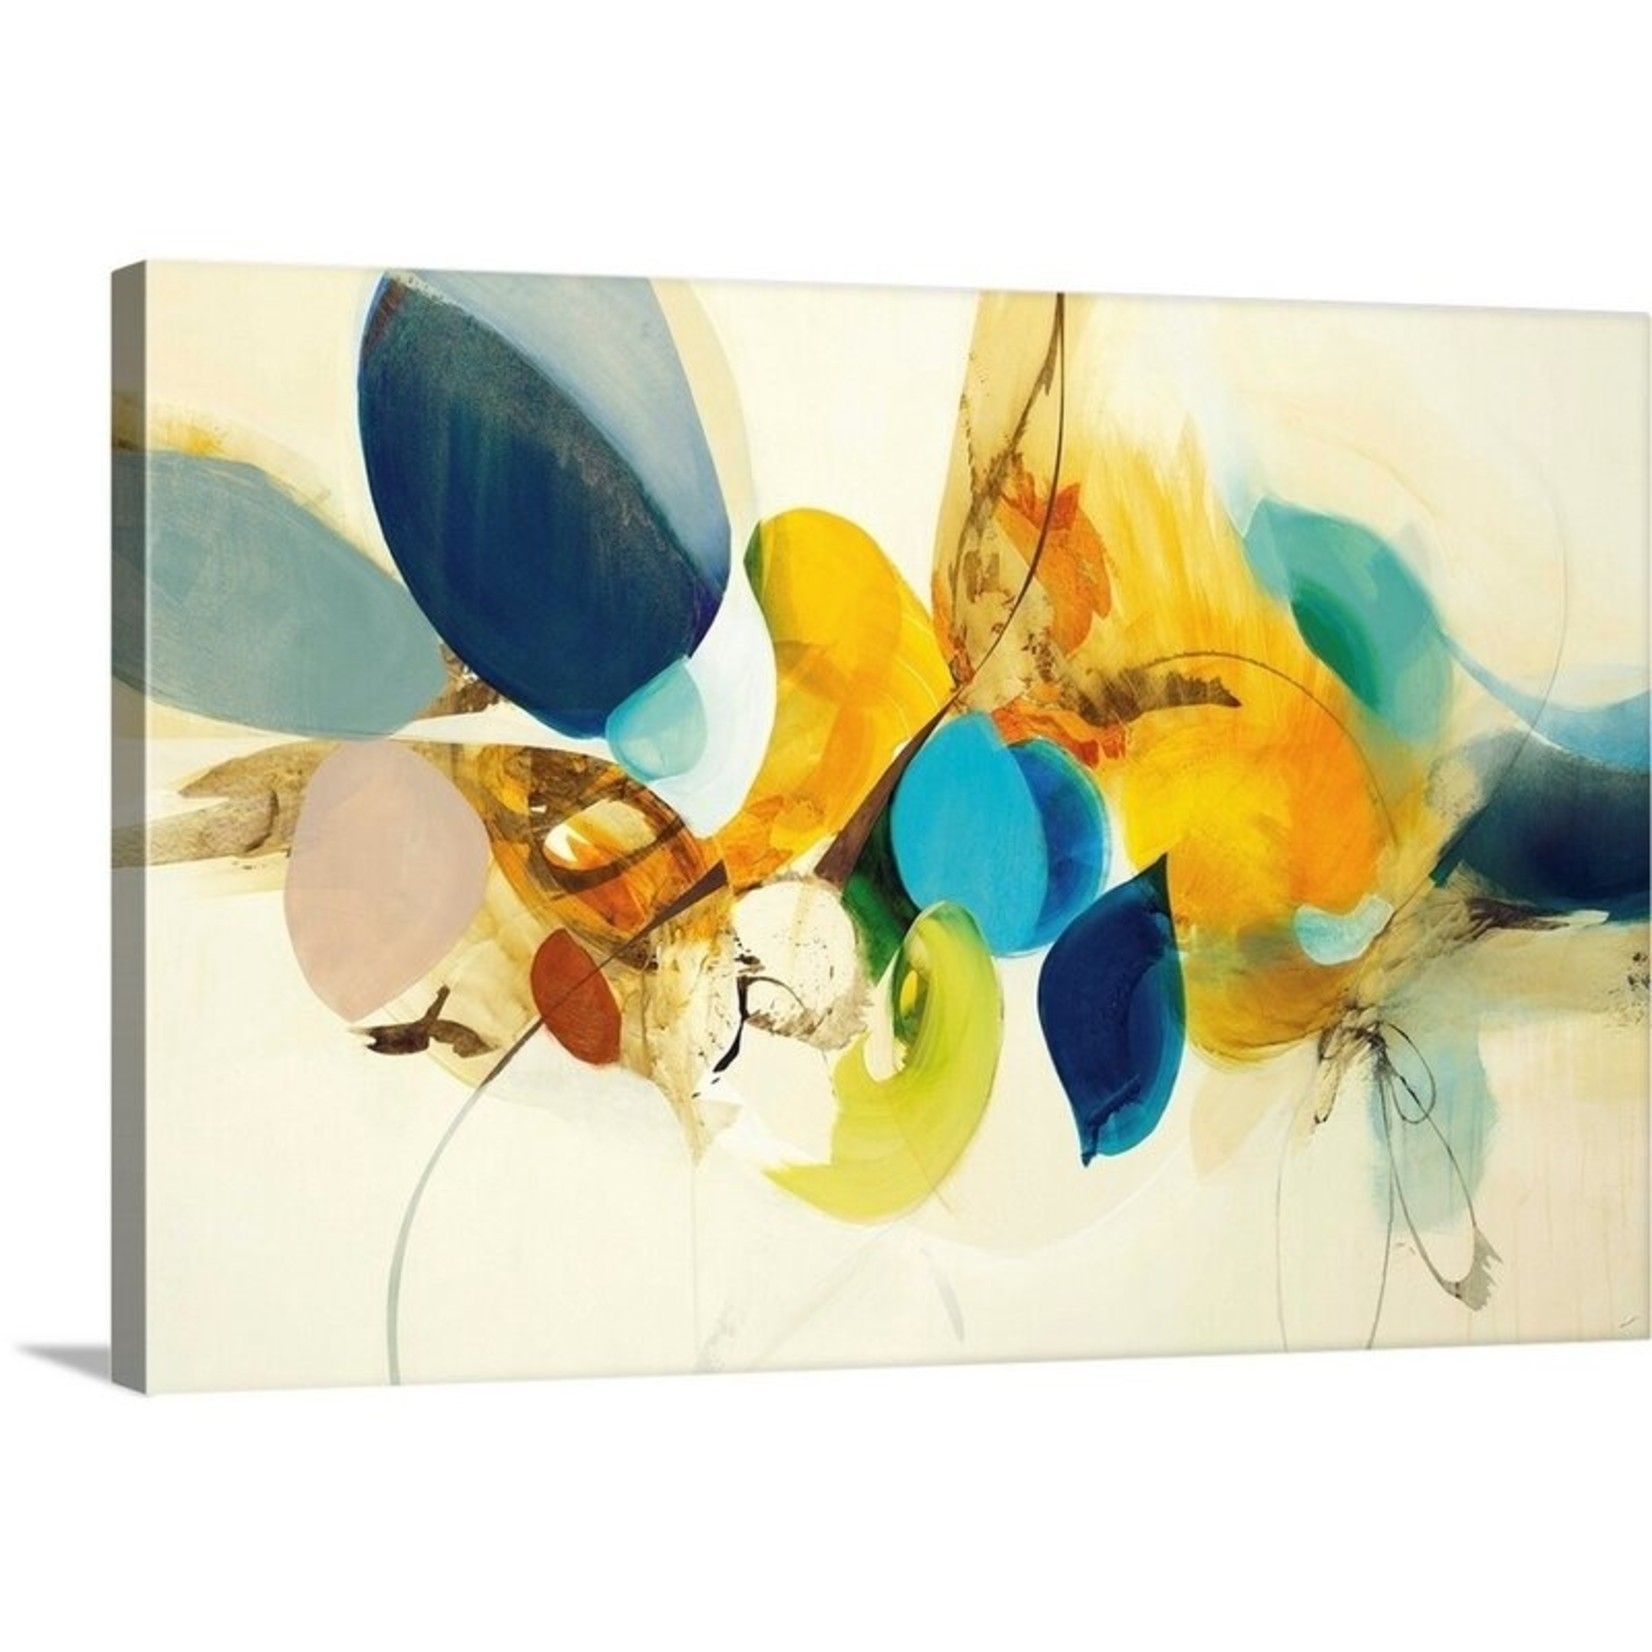 """*24"""" x 16"""" - Candid Color' by Sarah Stockstill Painting Print"""